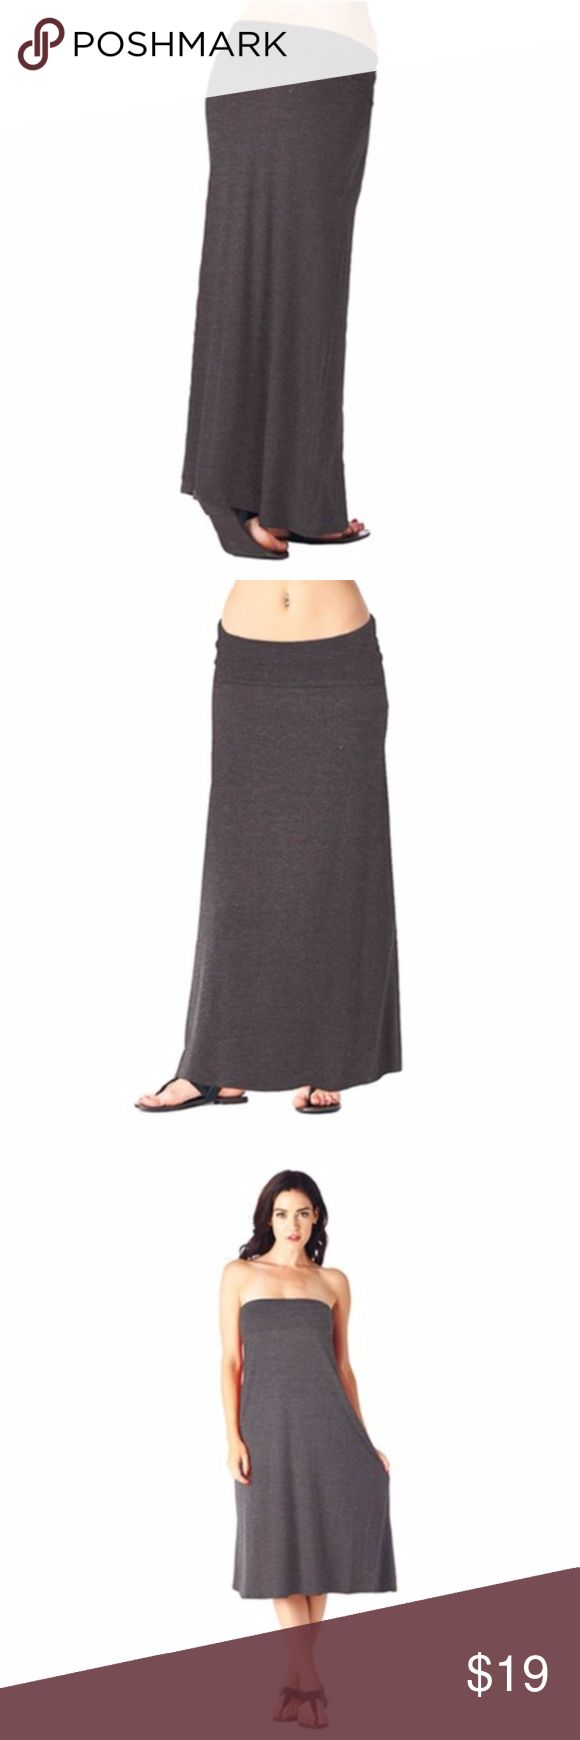 """Plus Size Charcoal Grey Maxi Skirt This lovely piece can be worn as a maxi skirt or pulled up over the chest as a summer dress! The material is an incredibly soft blend of 95% Rayon, 5% Spandex. This skirt has a fold-over waistband and flattering shape. It measures about 40"""" long and can comfortably stretch up to 46"""" around the waist. #10WJ19 Skirts Maxi"""